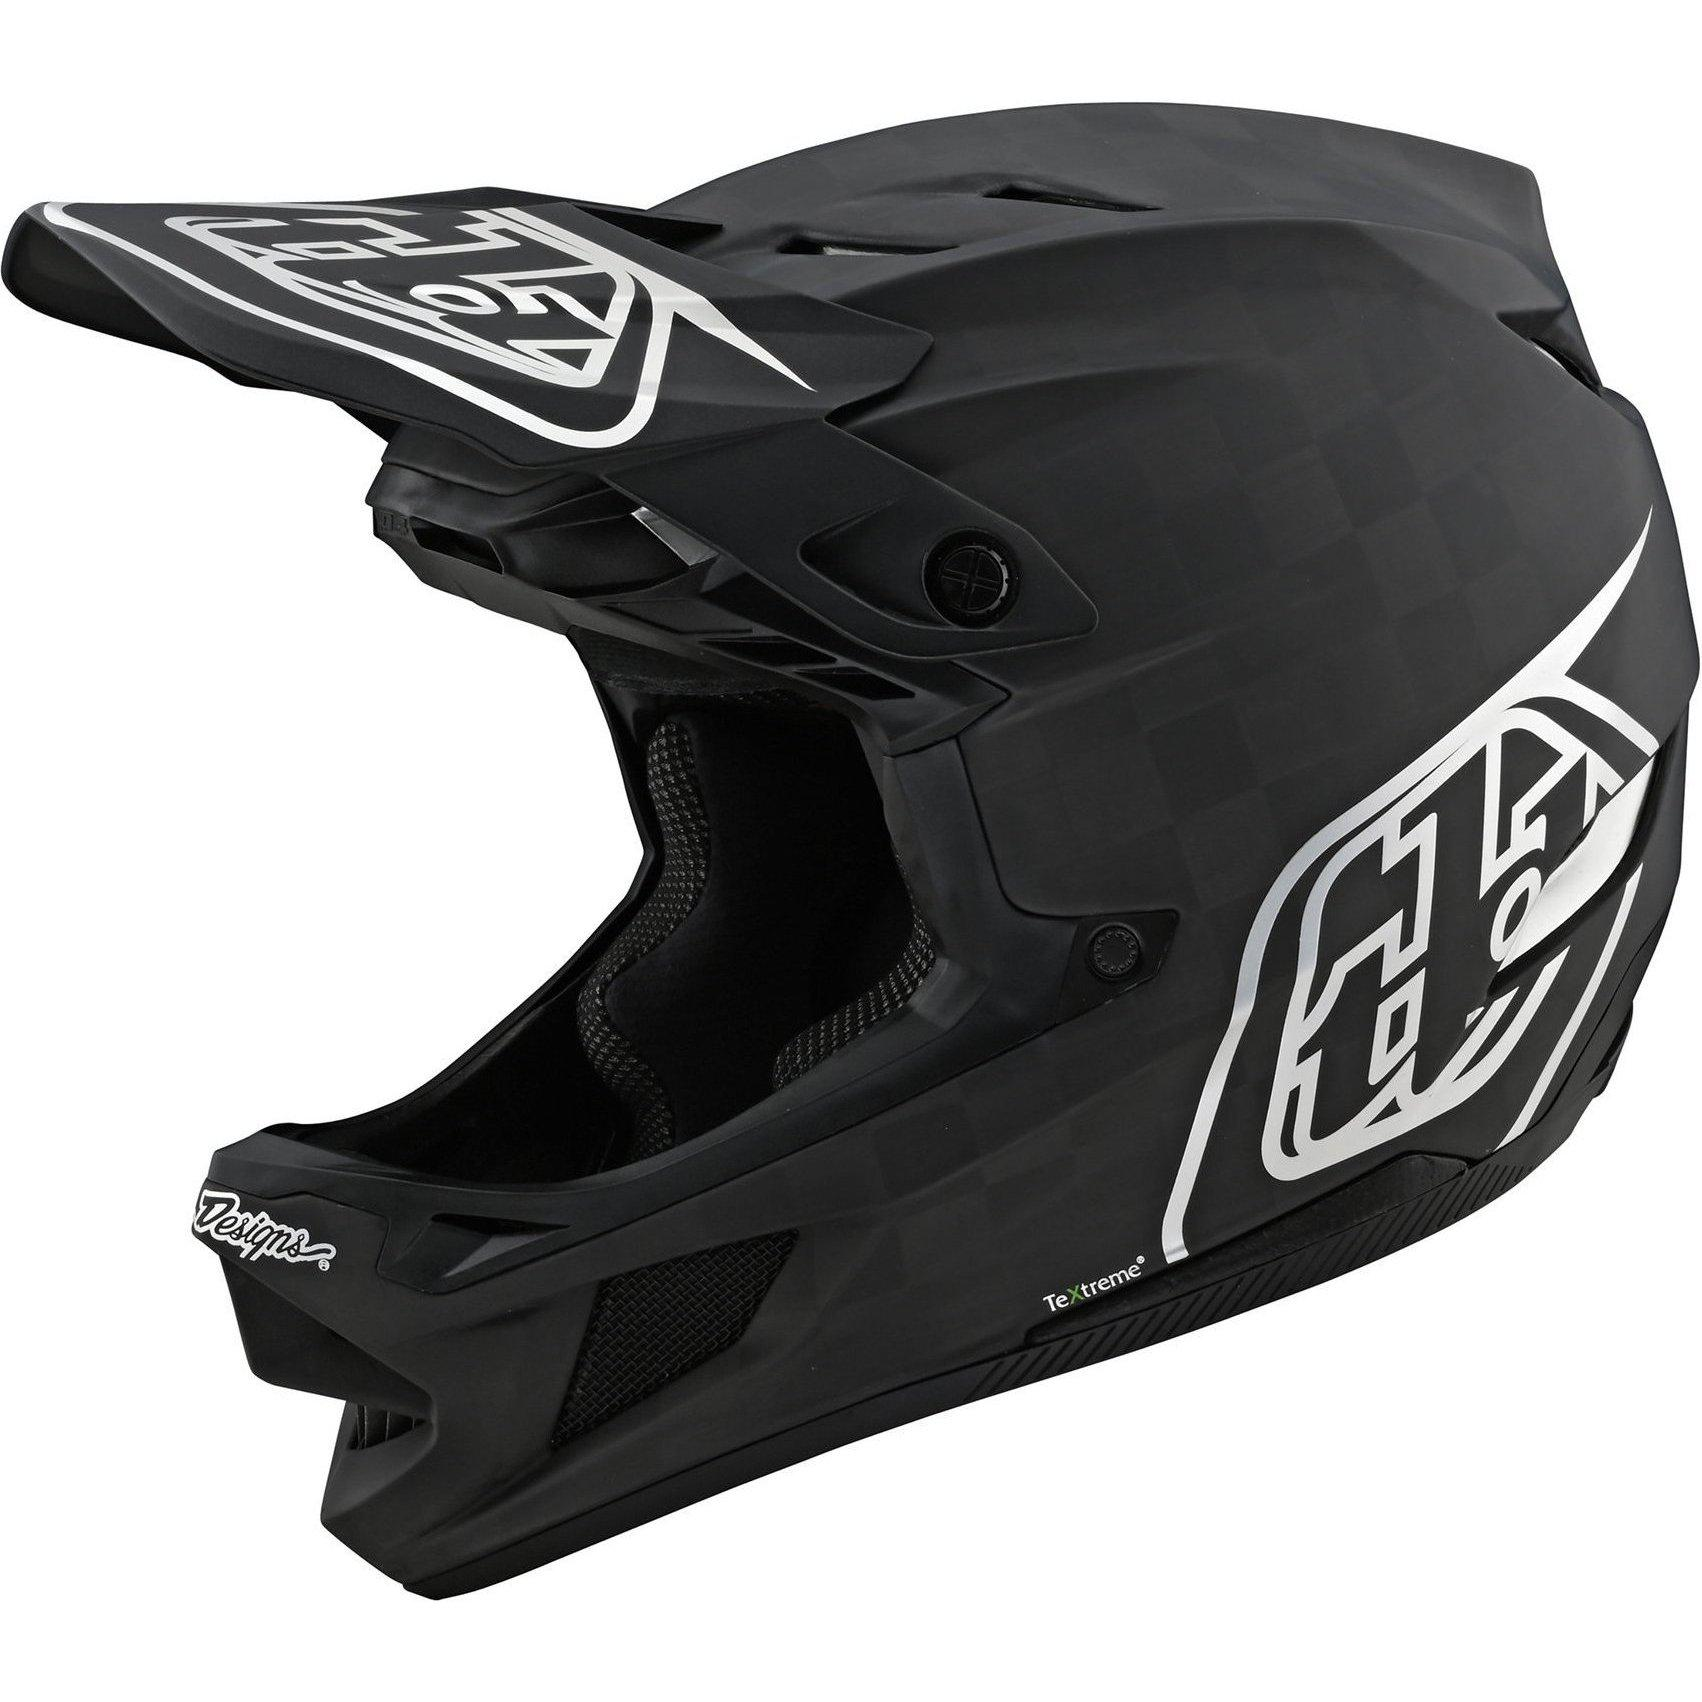 Troy Lee Designs-Troy Lee Designs D4 Carbon Helmet-Freedom 2.0 - Black/Red-L-TLD139777004-saddleback-elite-performance-cycling